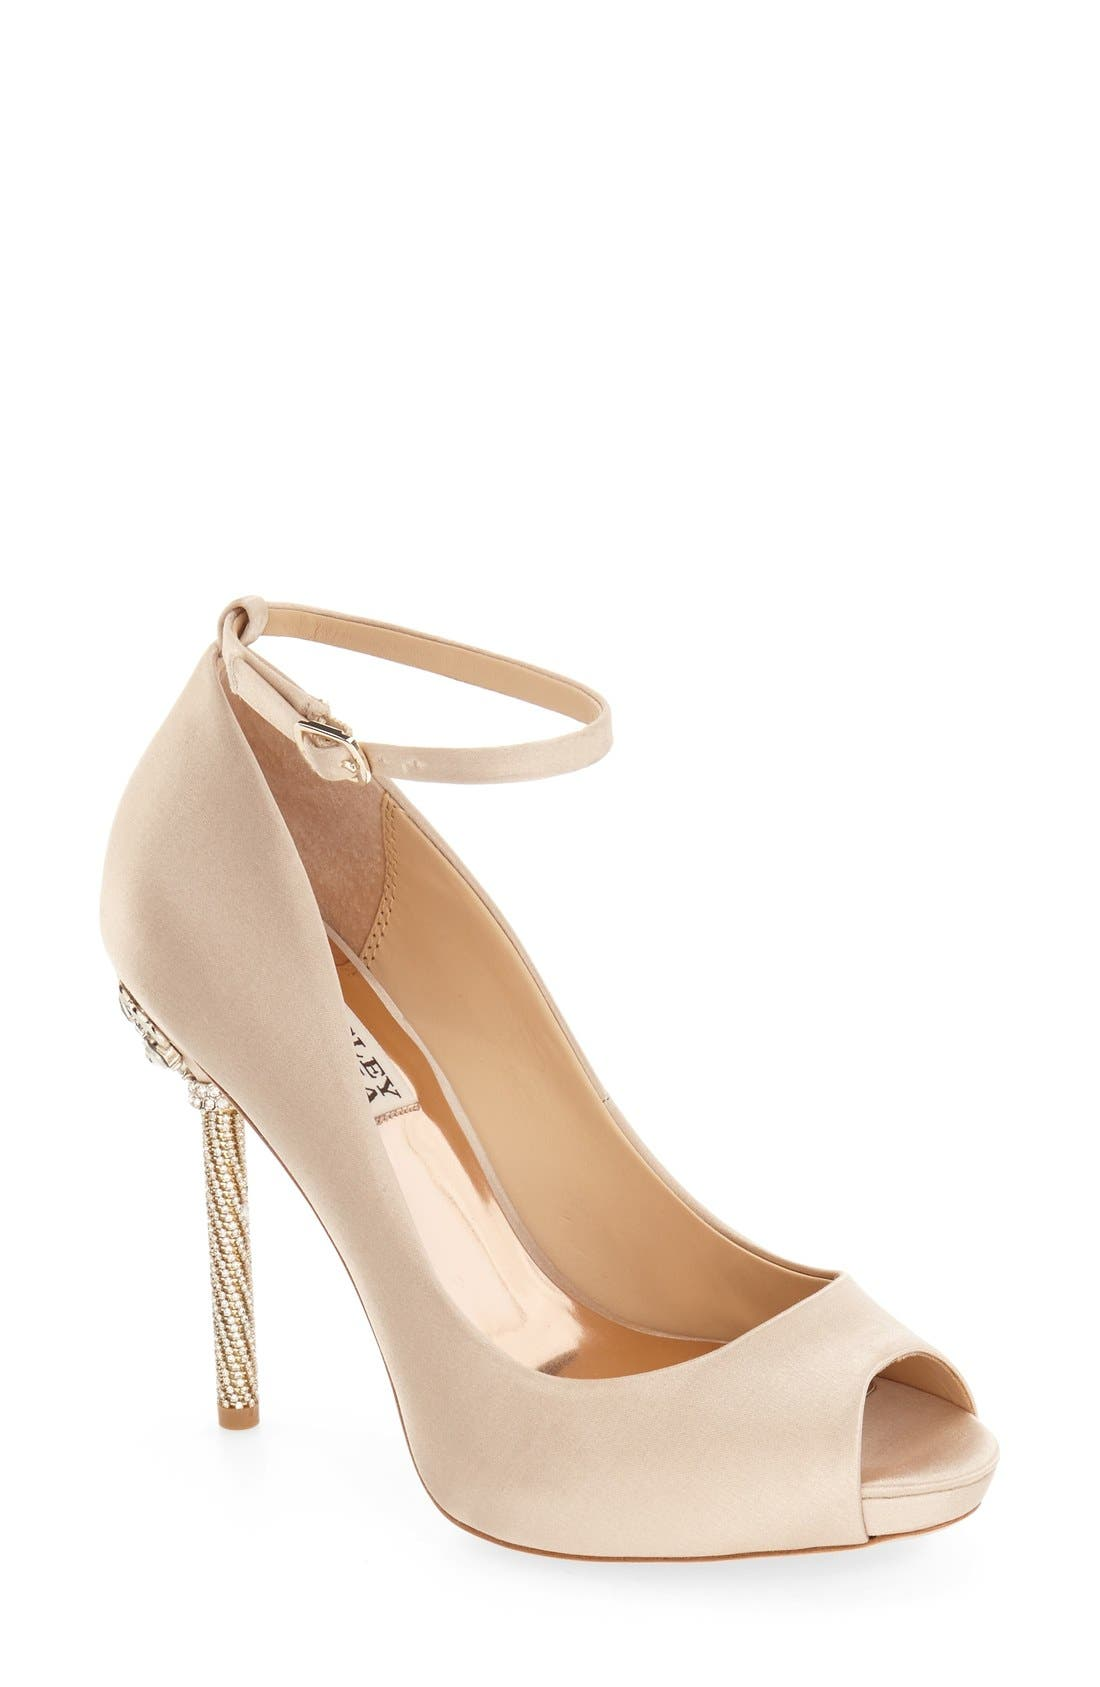 Main Image - Badgley Mischka 'Diego' Ankle Strap Pump (Women)